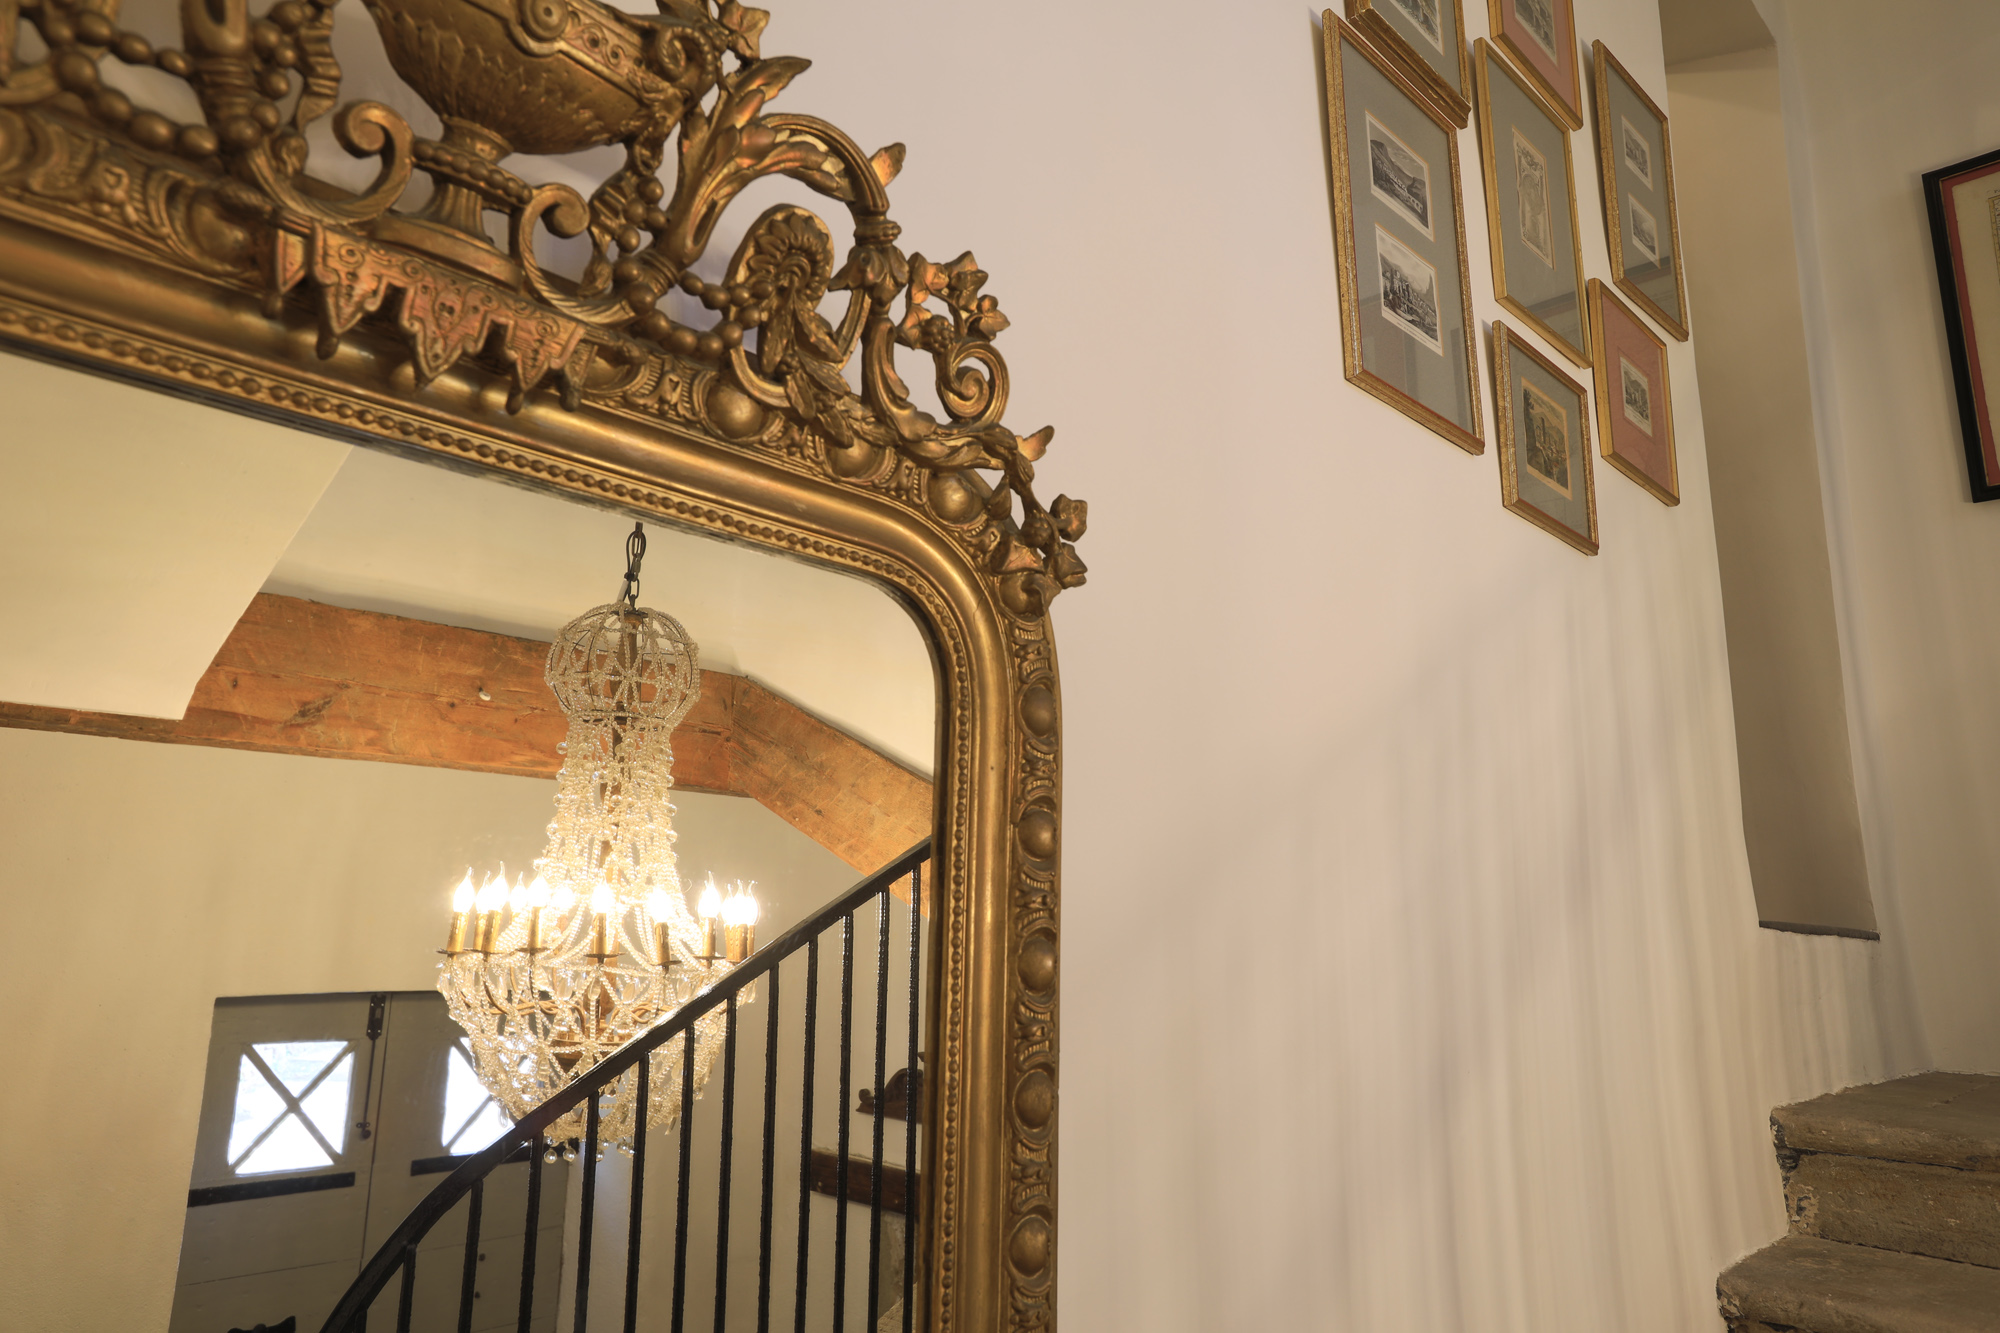 Steps from entrance hall